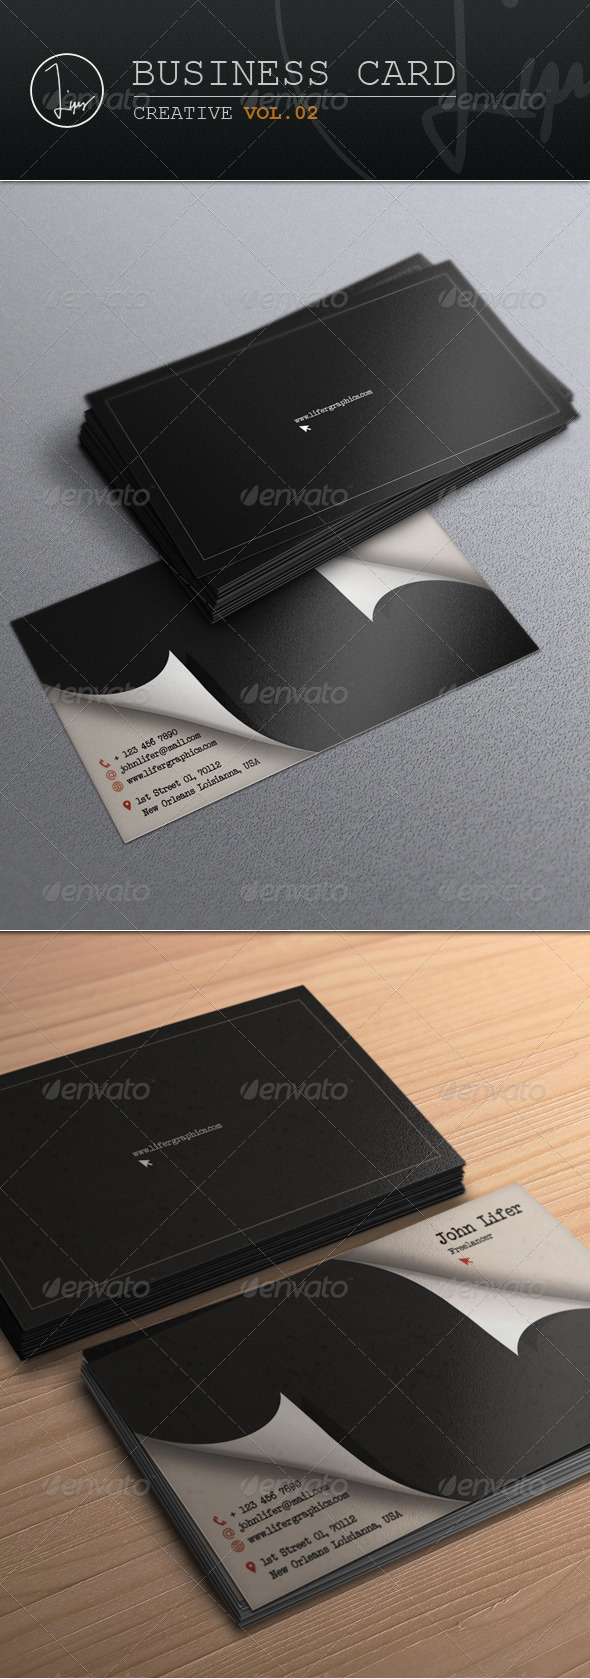 Business Card / Creative Vol.02 - Creative Business Cards